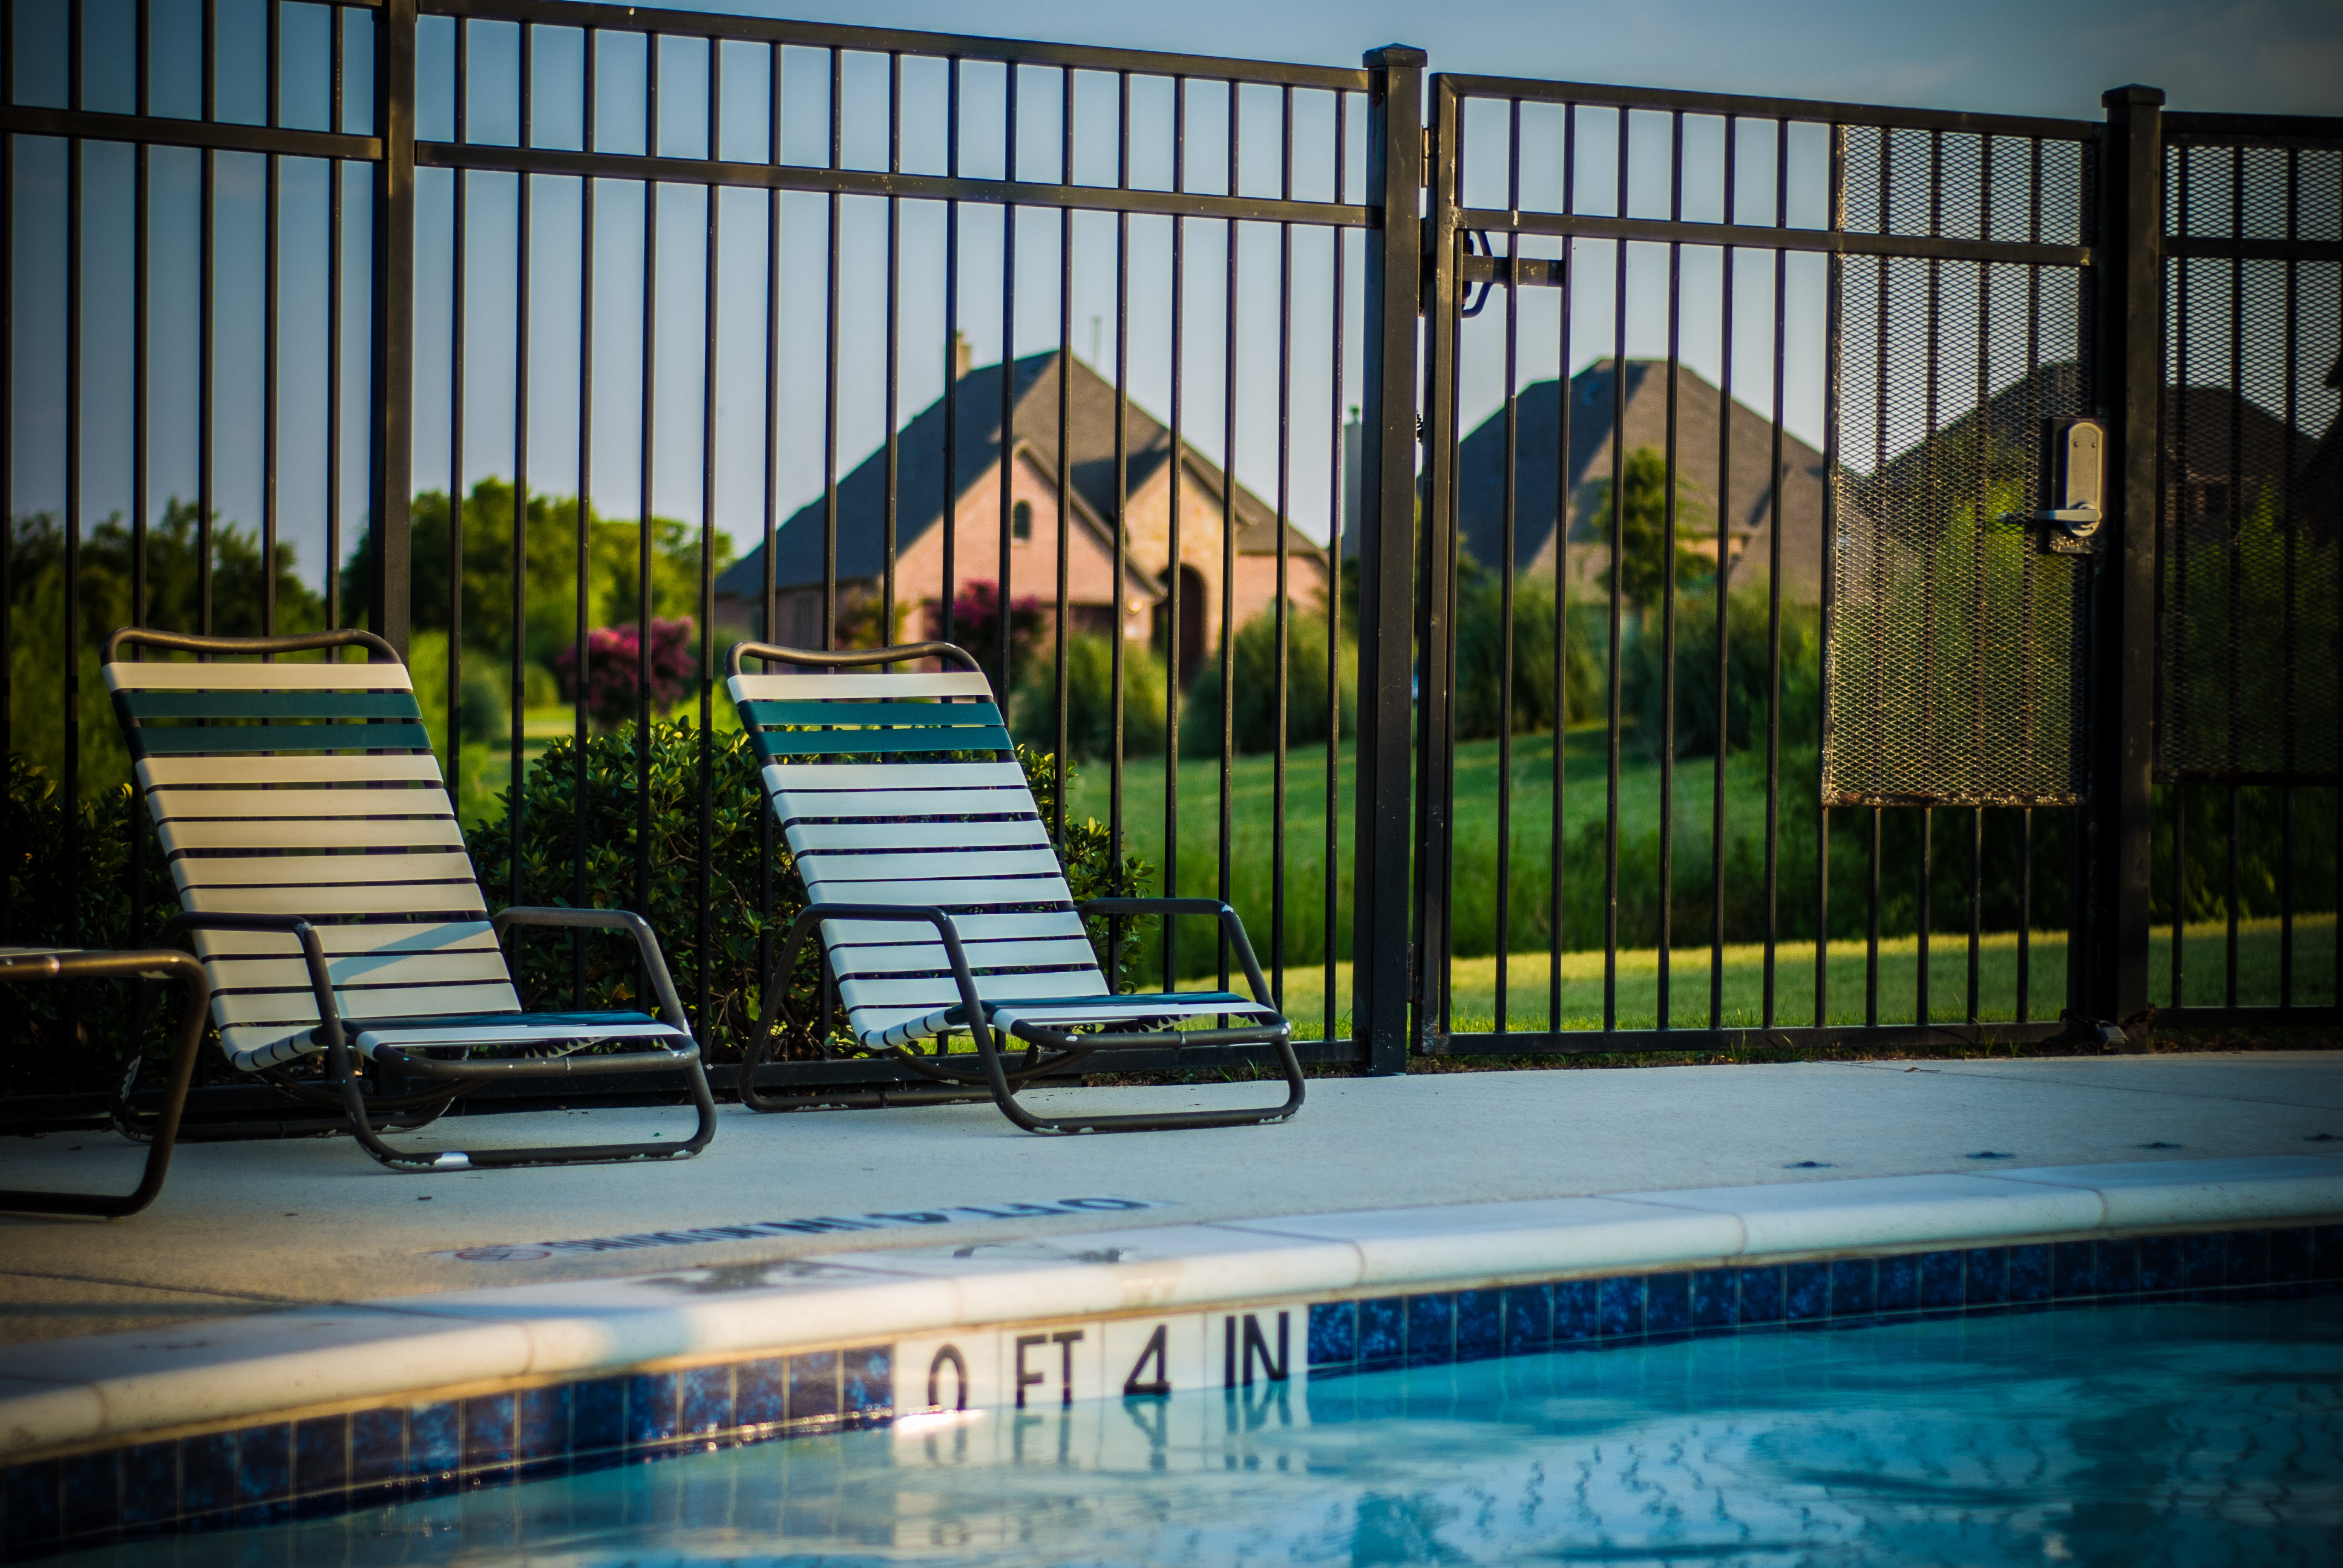 Defective Swimming Pool Gate Lawsuits In Washington D C Maryland And Virginia